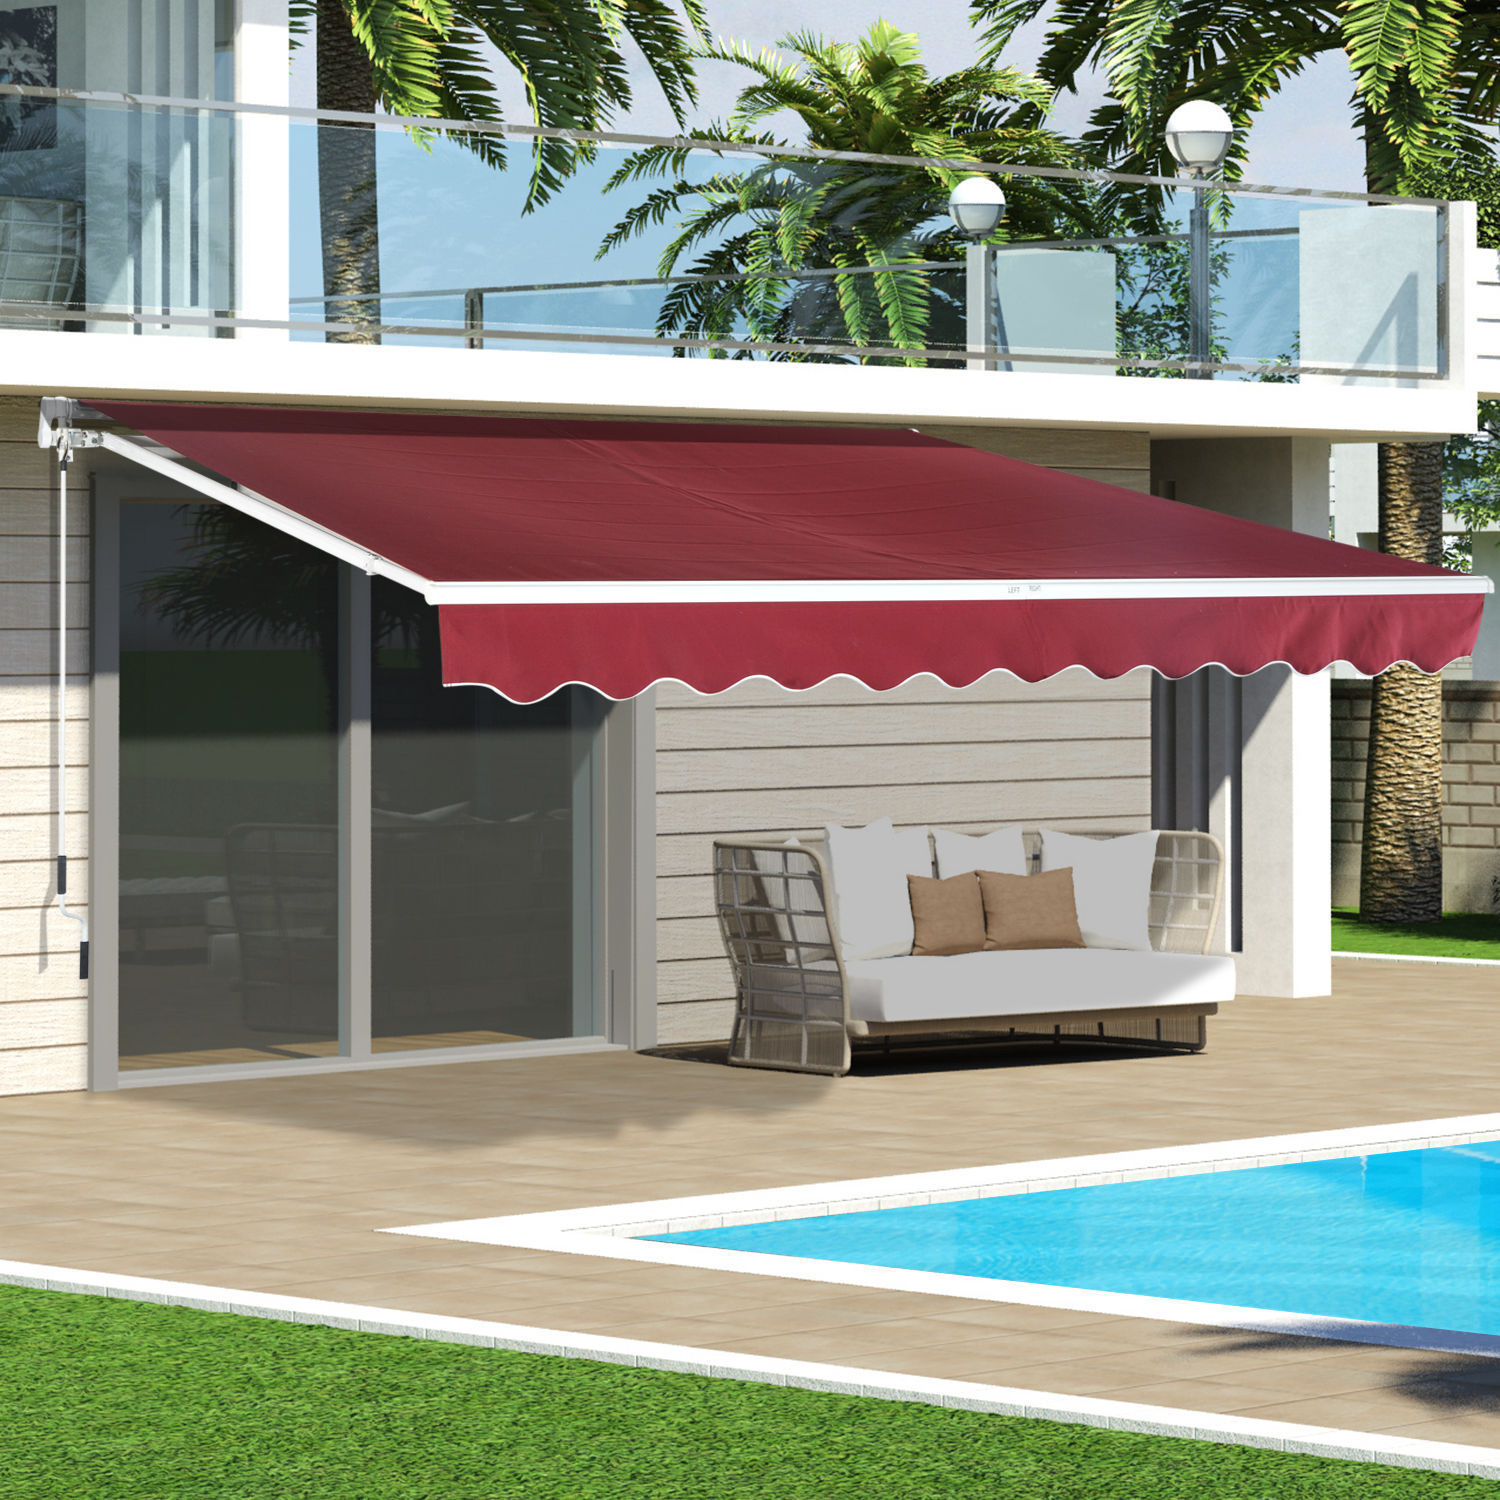 Outdoor 8 x7 13 x8 Patio Awning Sun Shade Canopy Shelter Manual